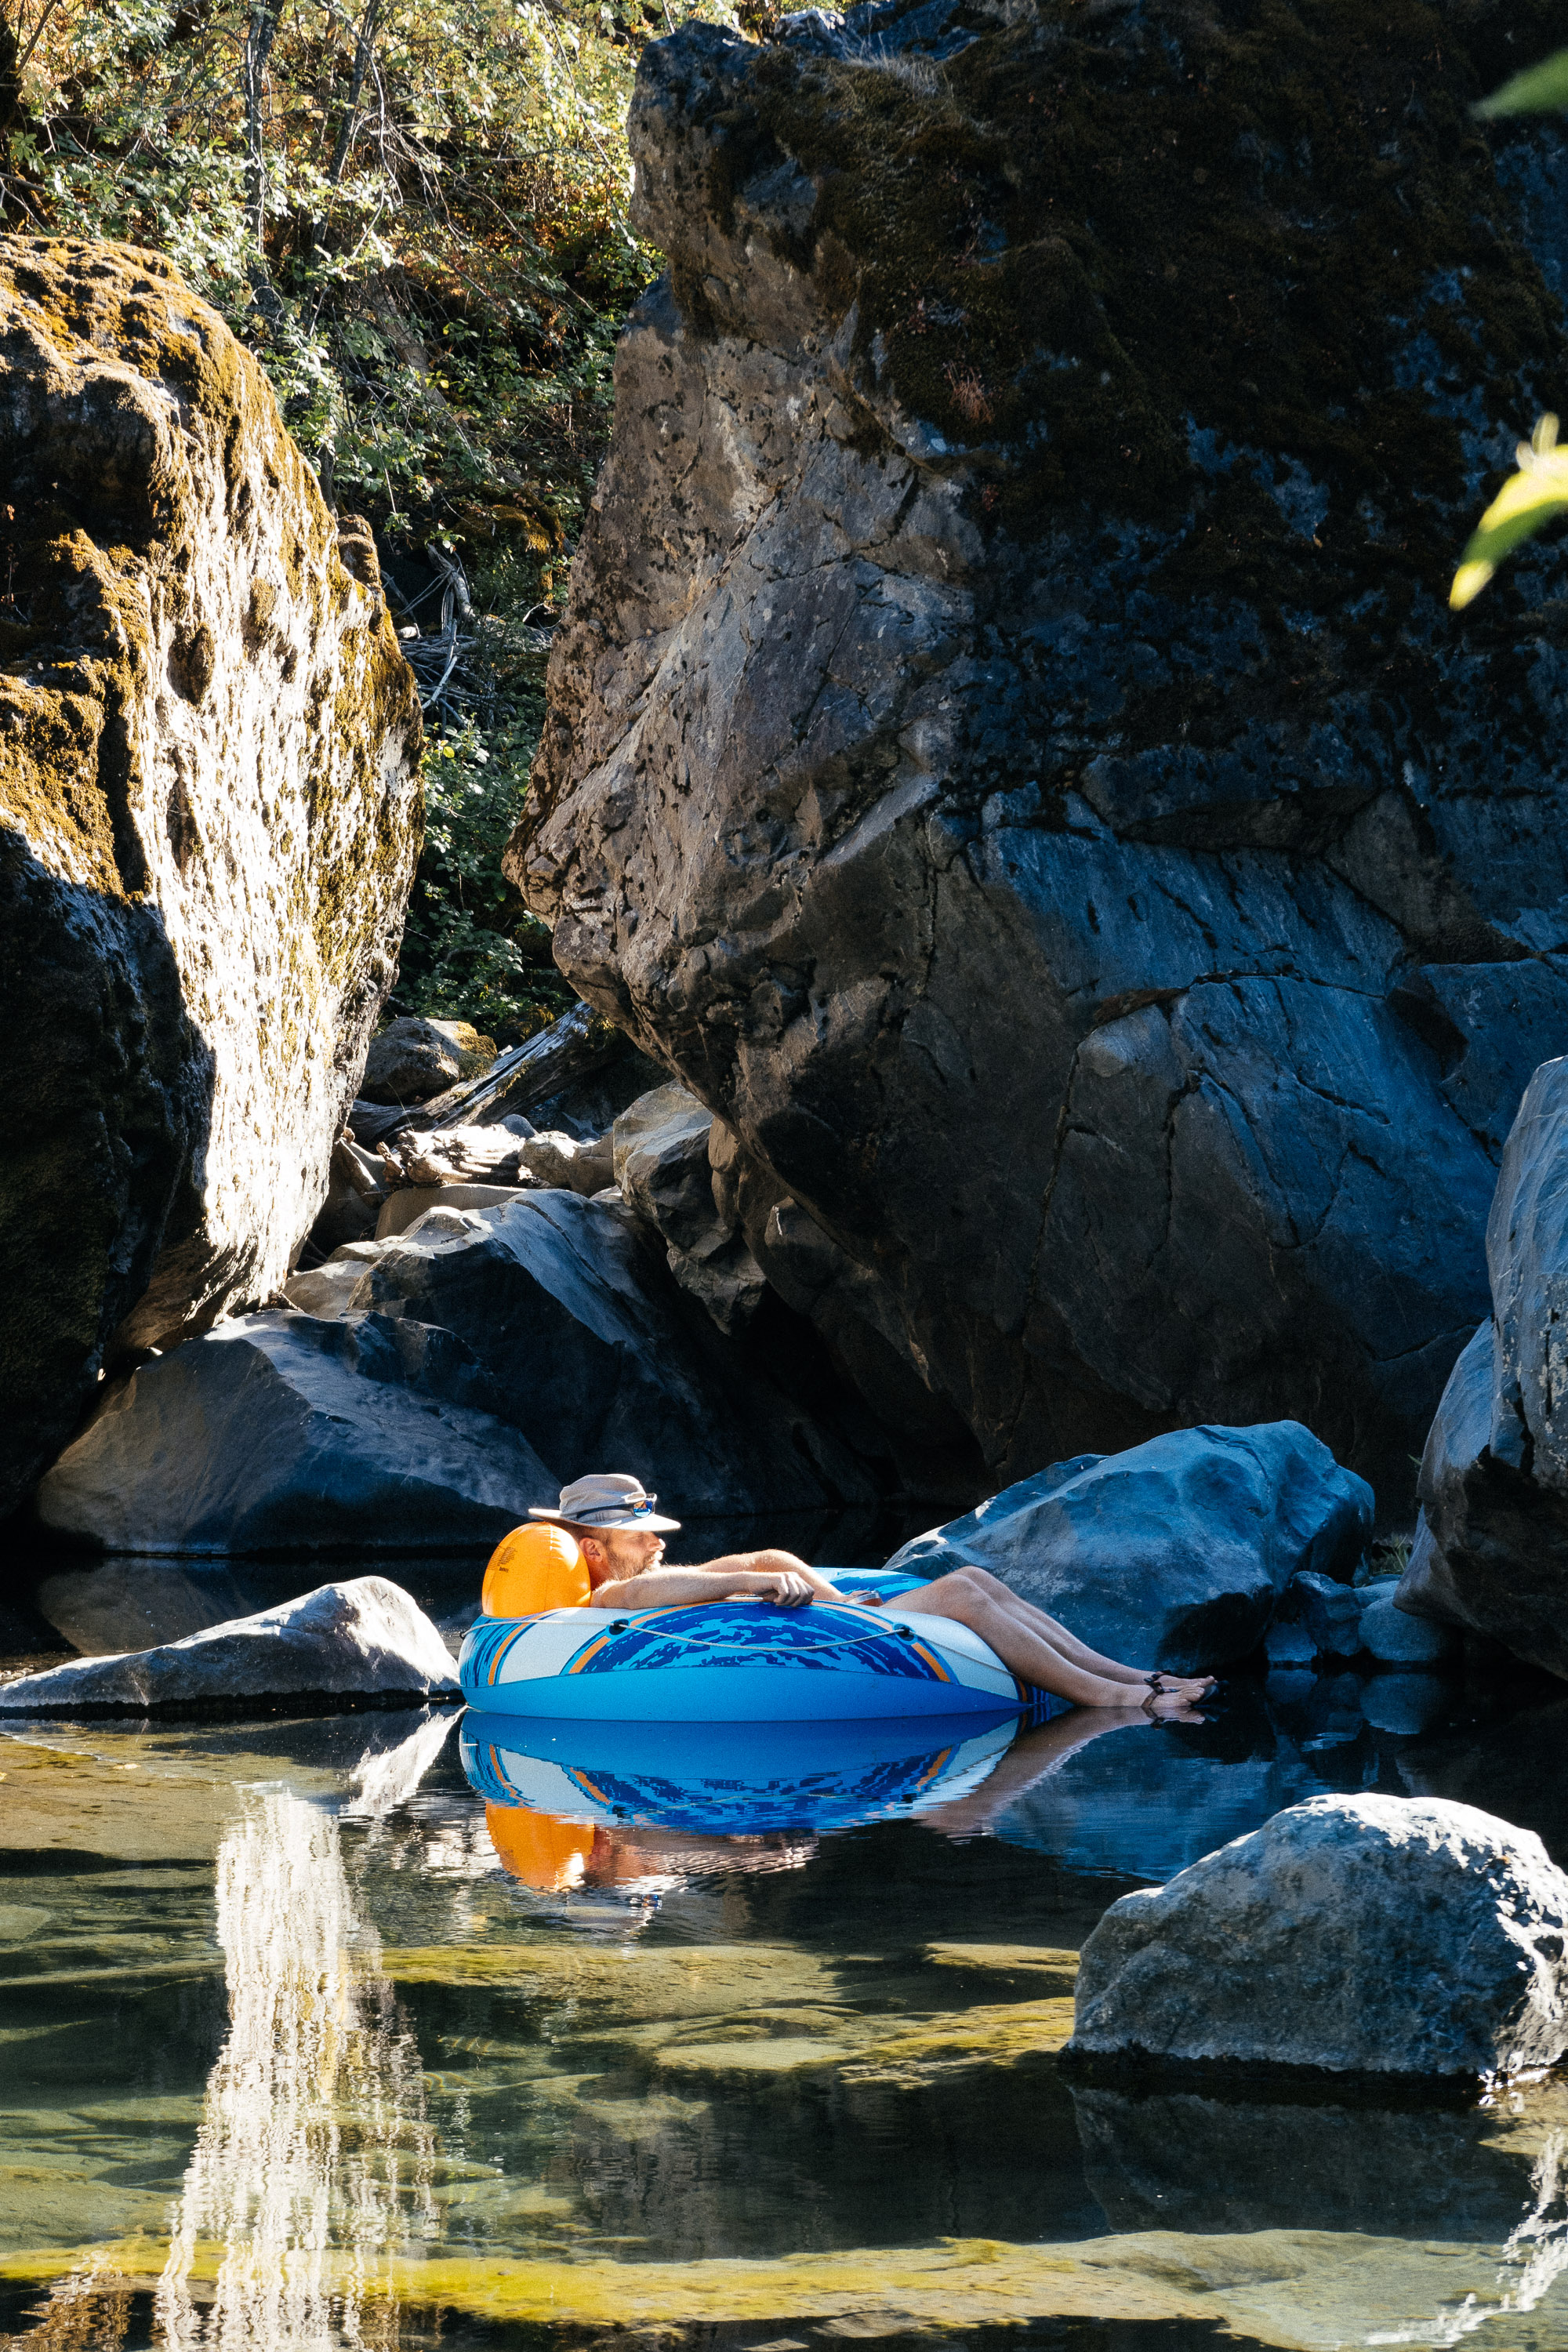 joe floating in the swimming hole